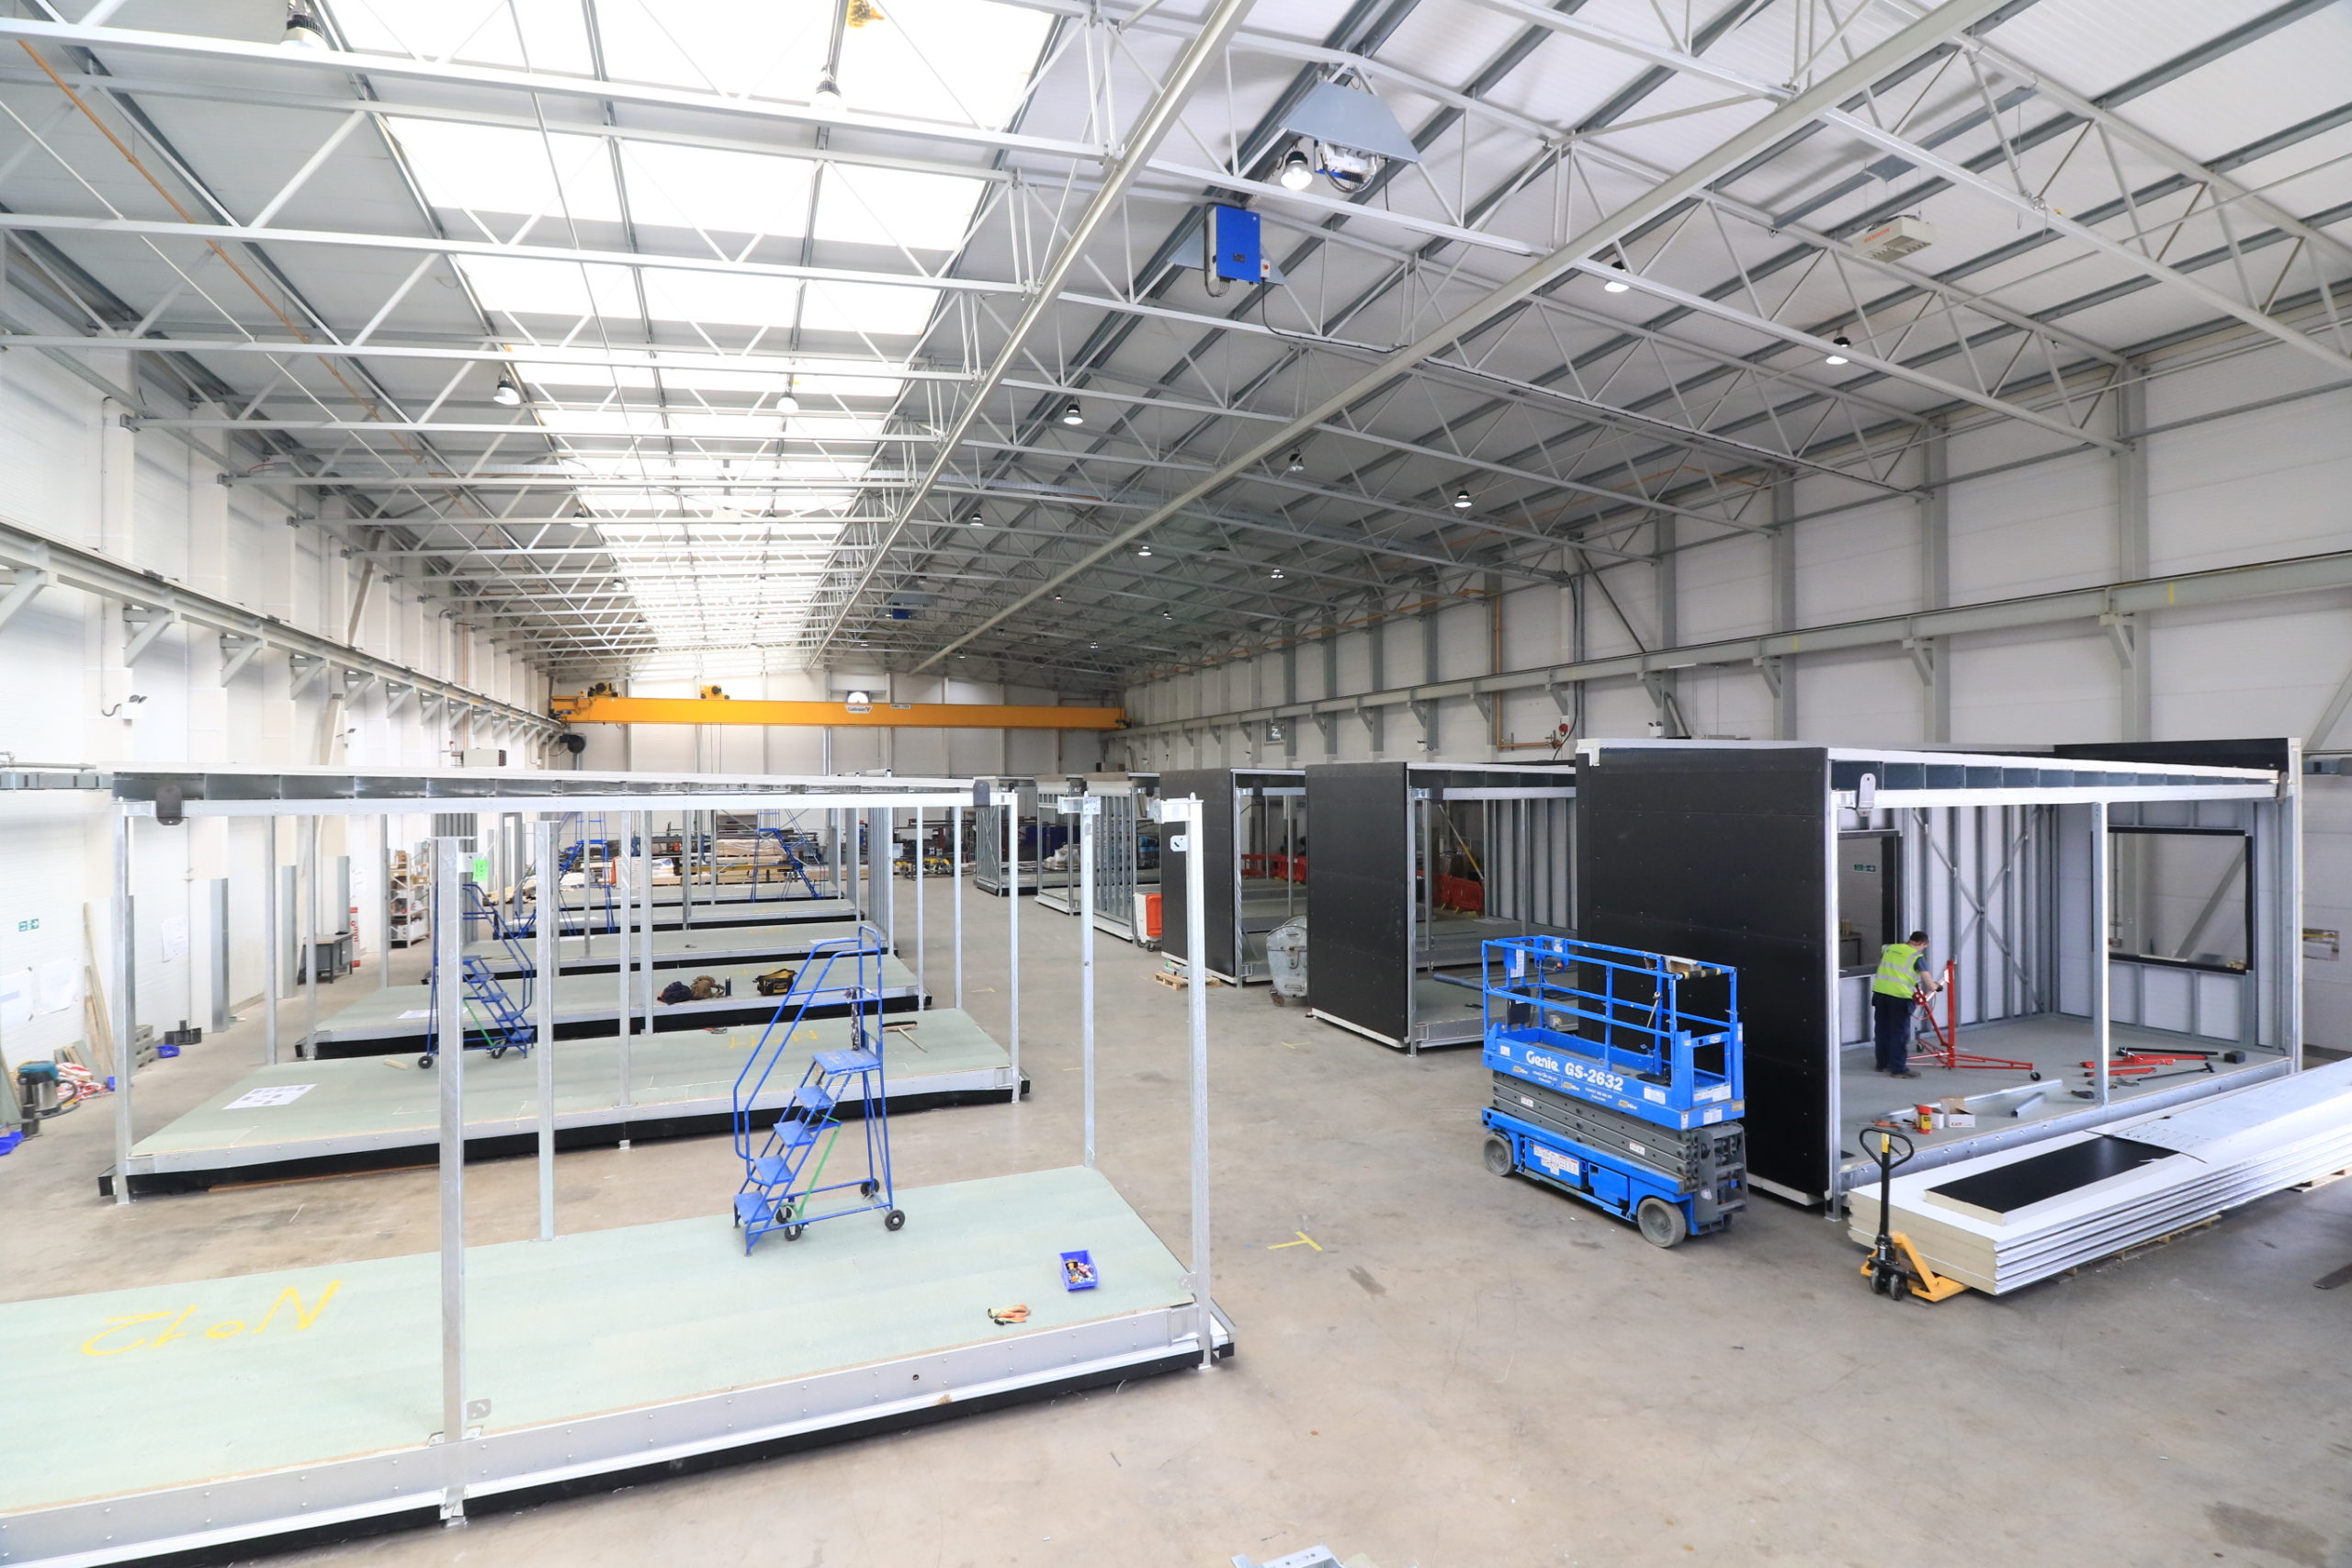 Collinson Construction appointed to £1.6bn national modular building framework